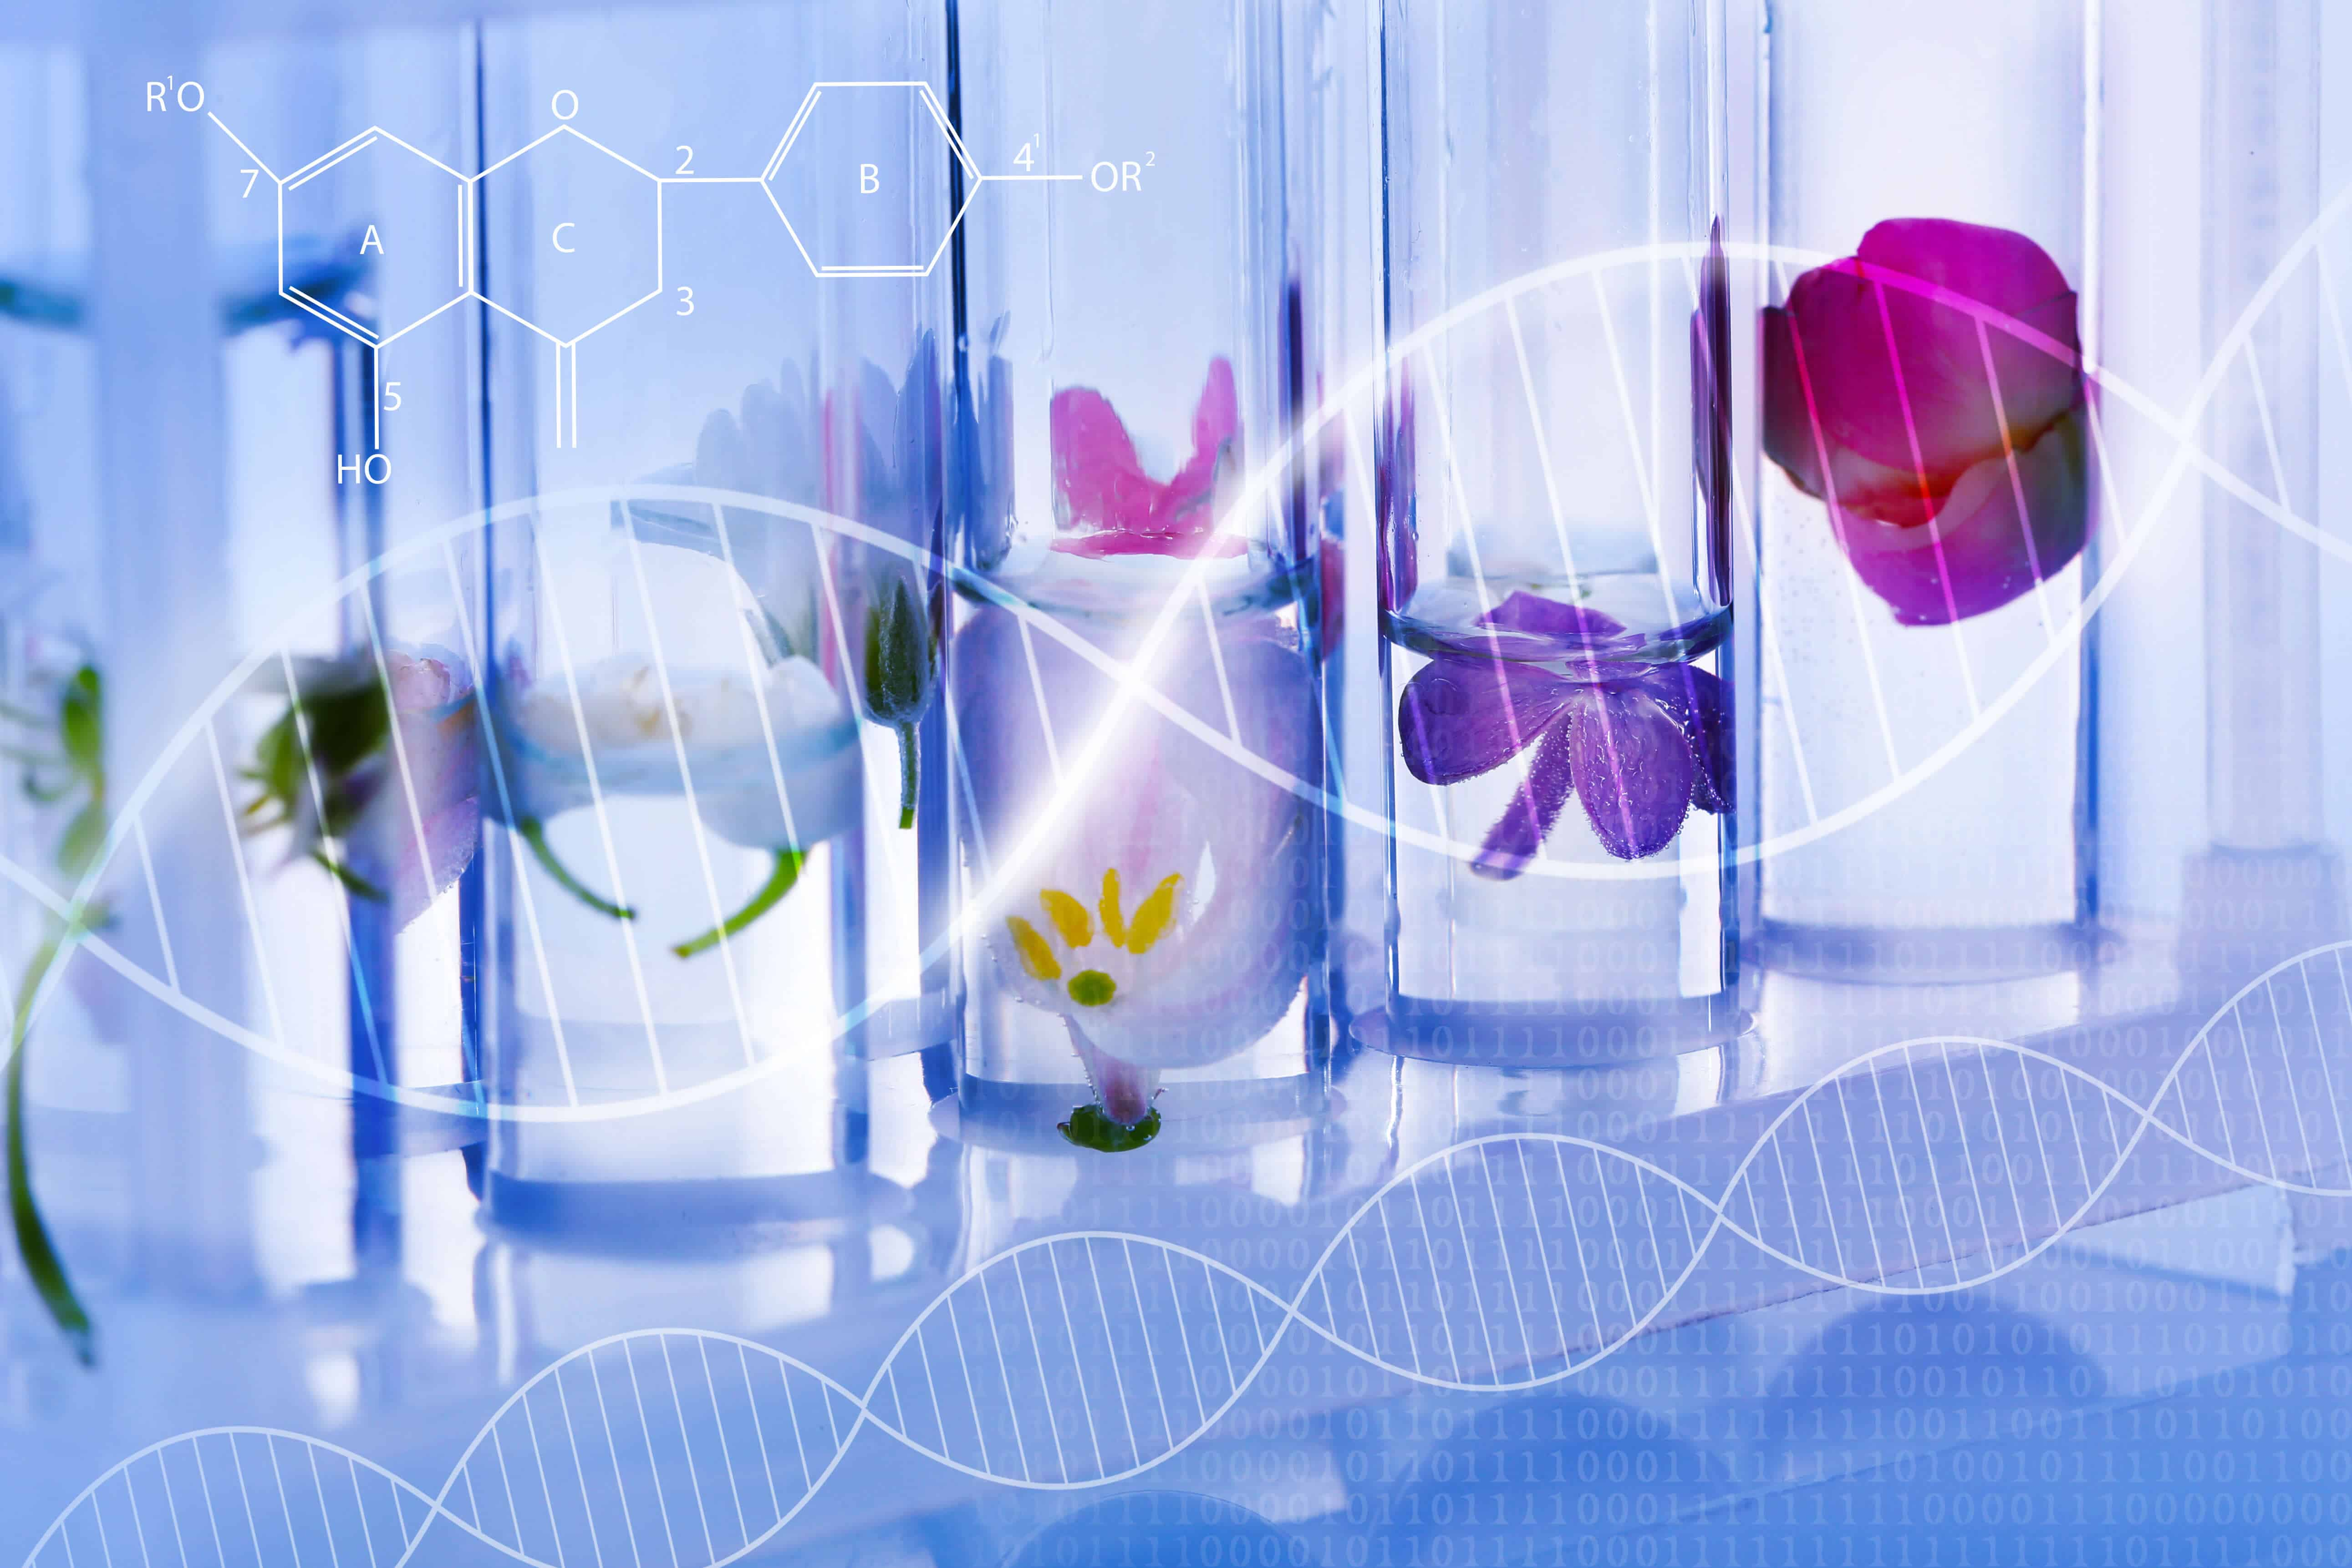 Test tubes with different flowers, closeup. Blue toned. Scientific research concept.